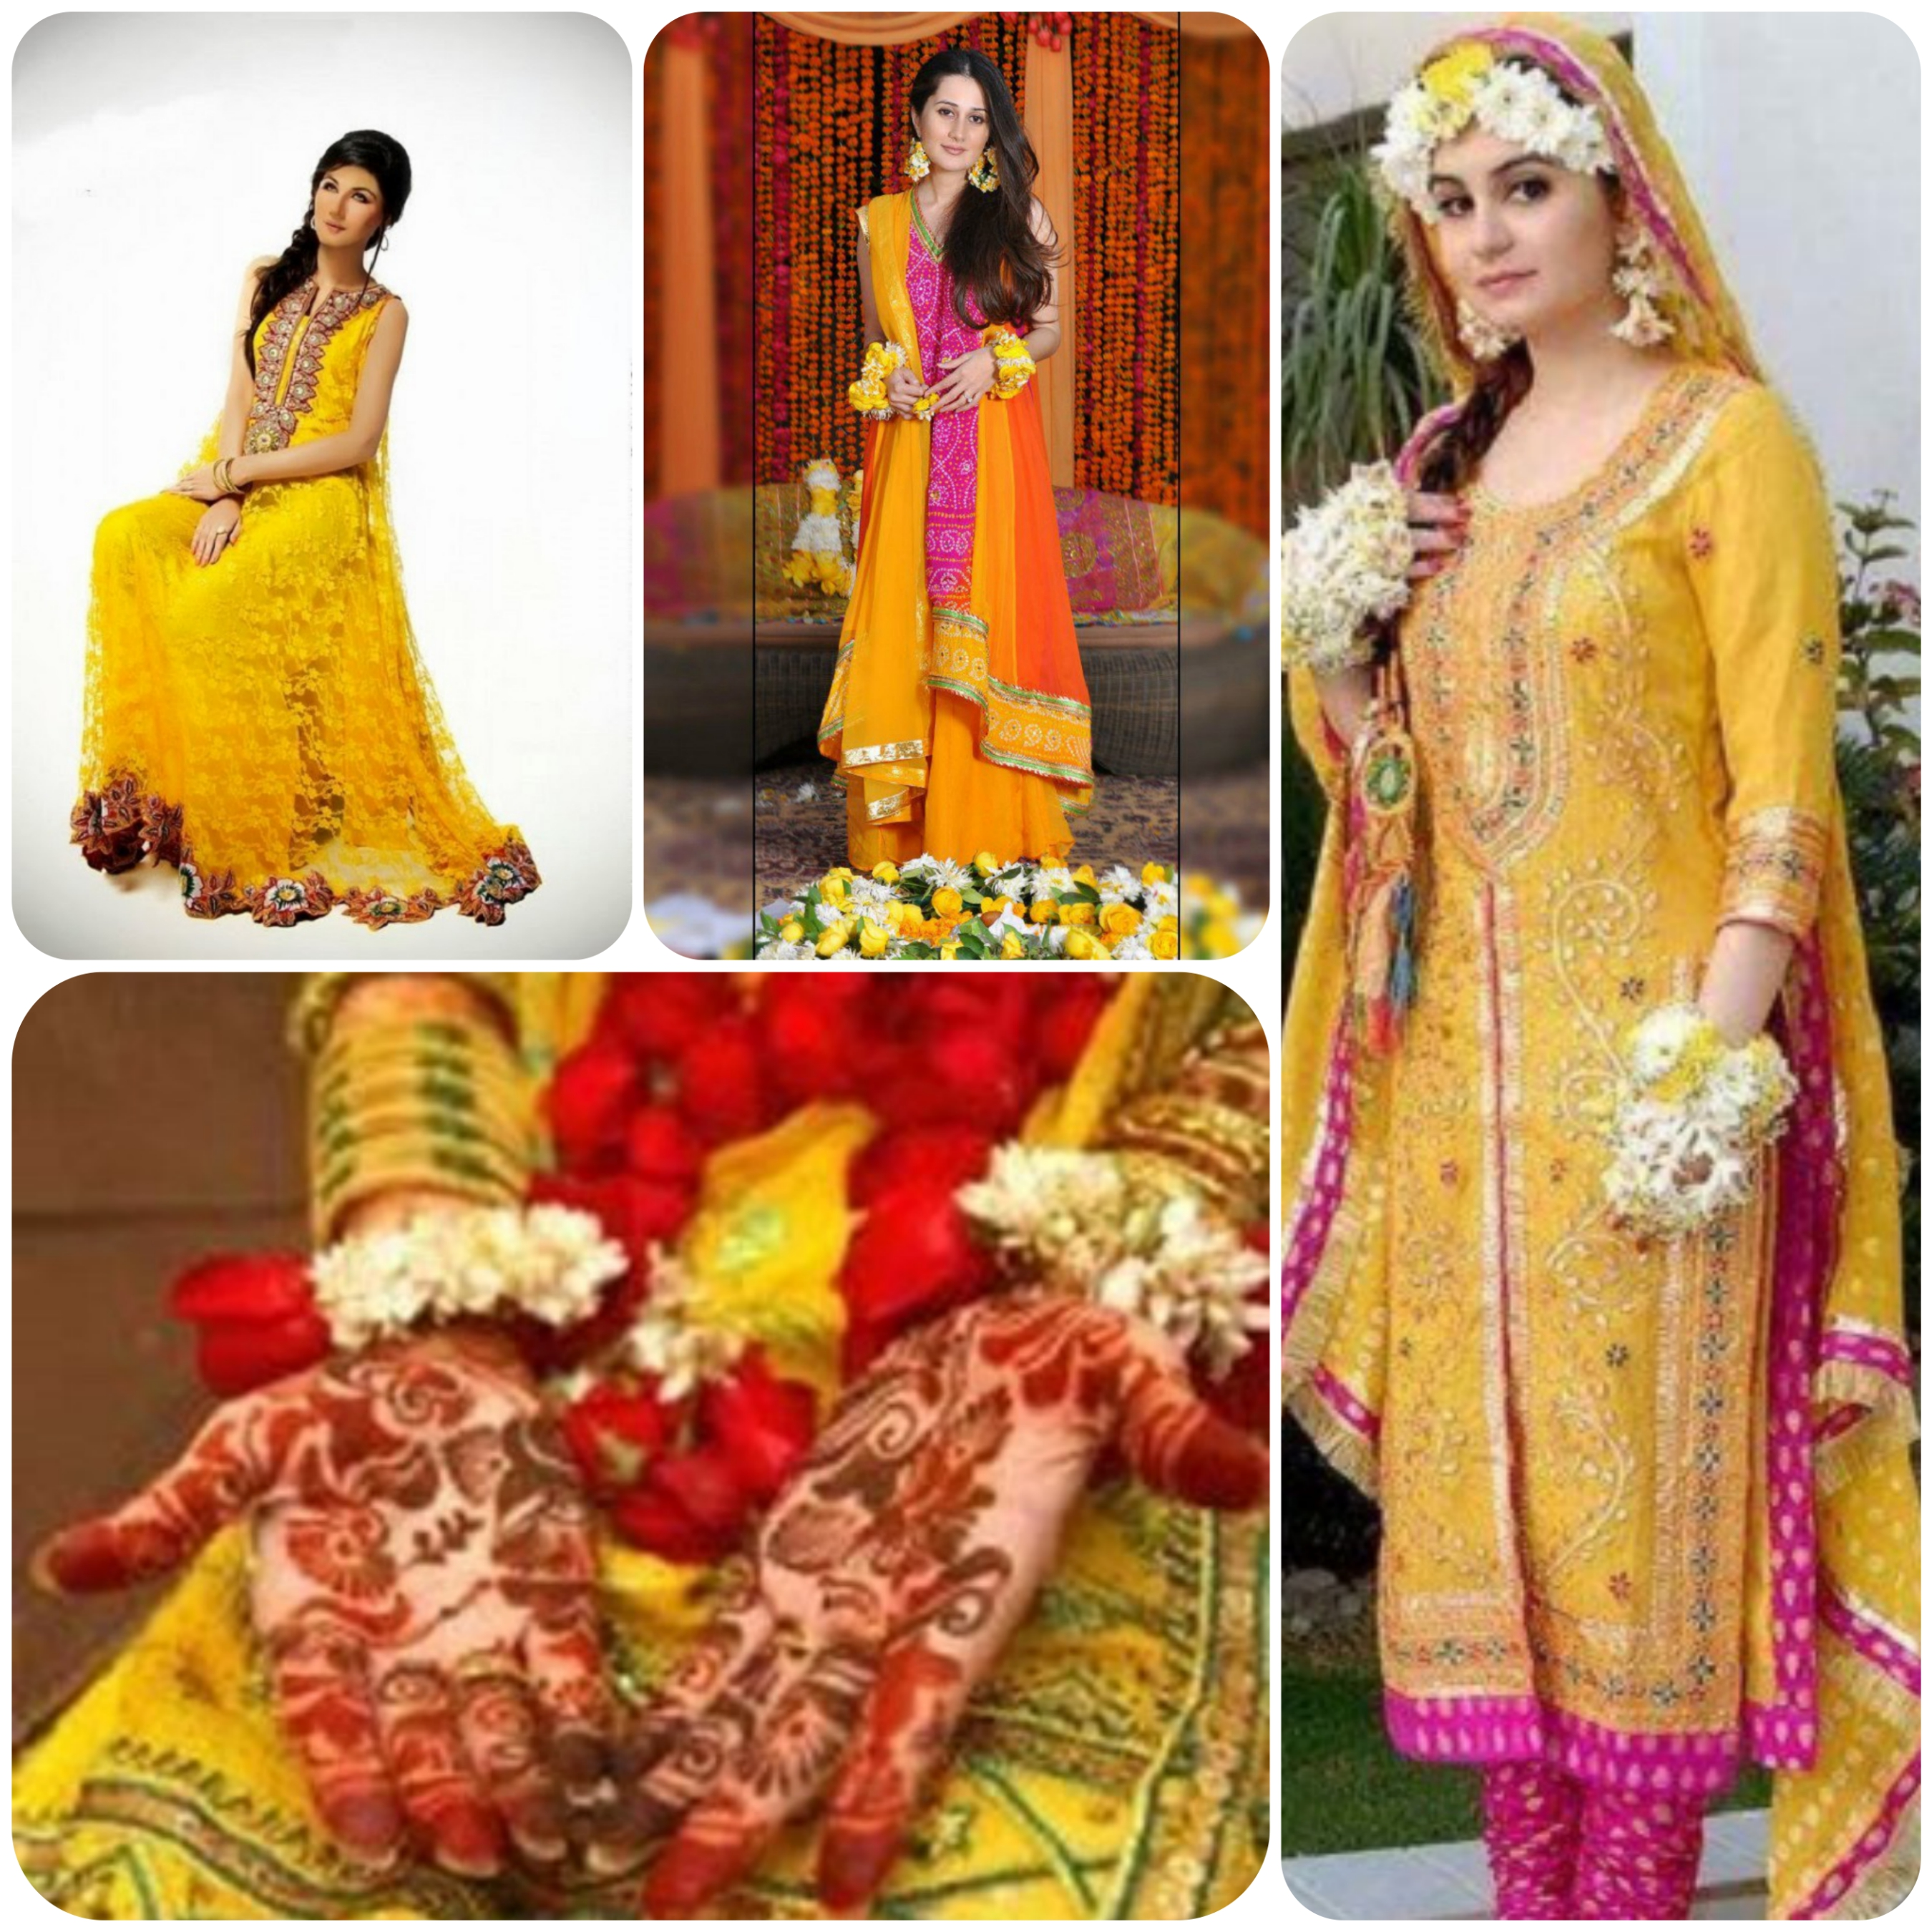 Bridal Mehndi Dresses for Girls \u2013 Fashion dresses